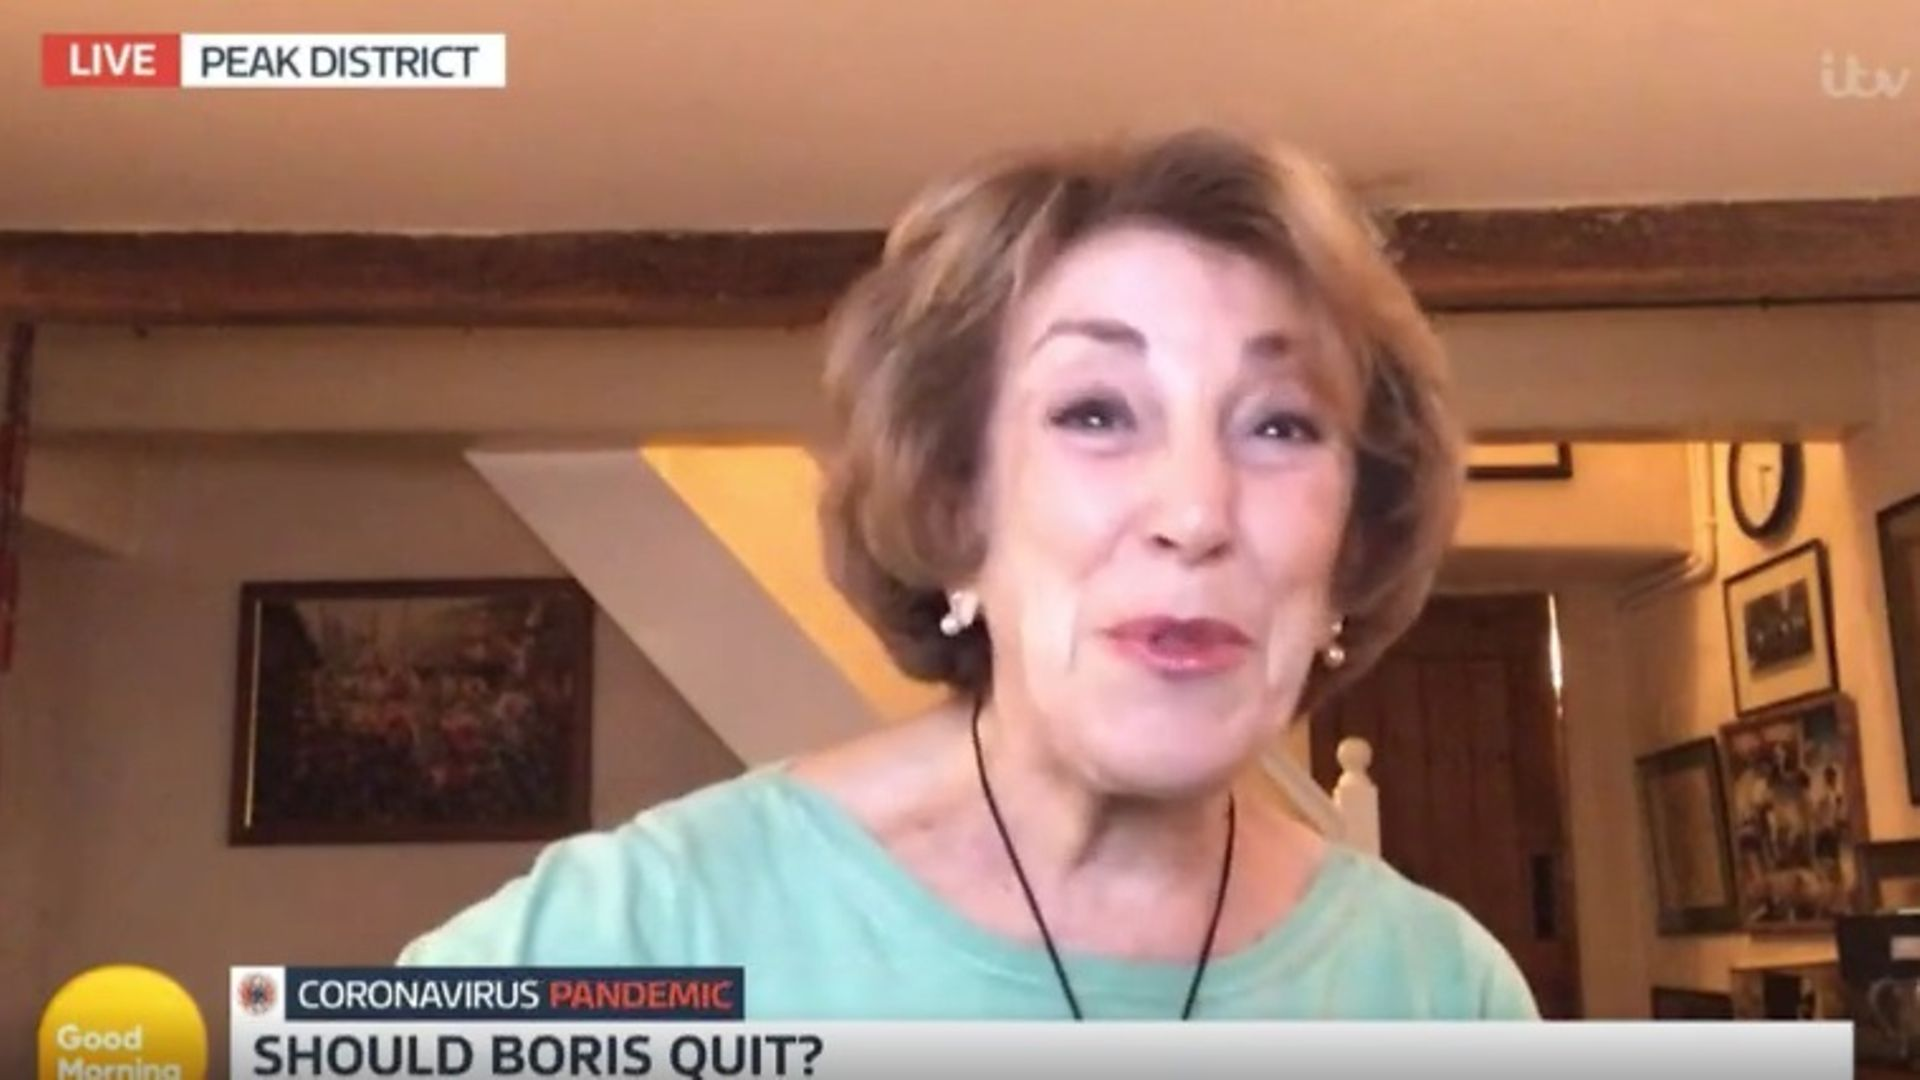 Edwina Currie tried to goad Piers Morgan on Good Morning Britain - Credit: ITV